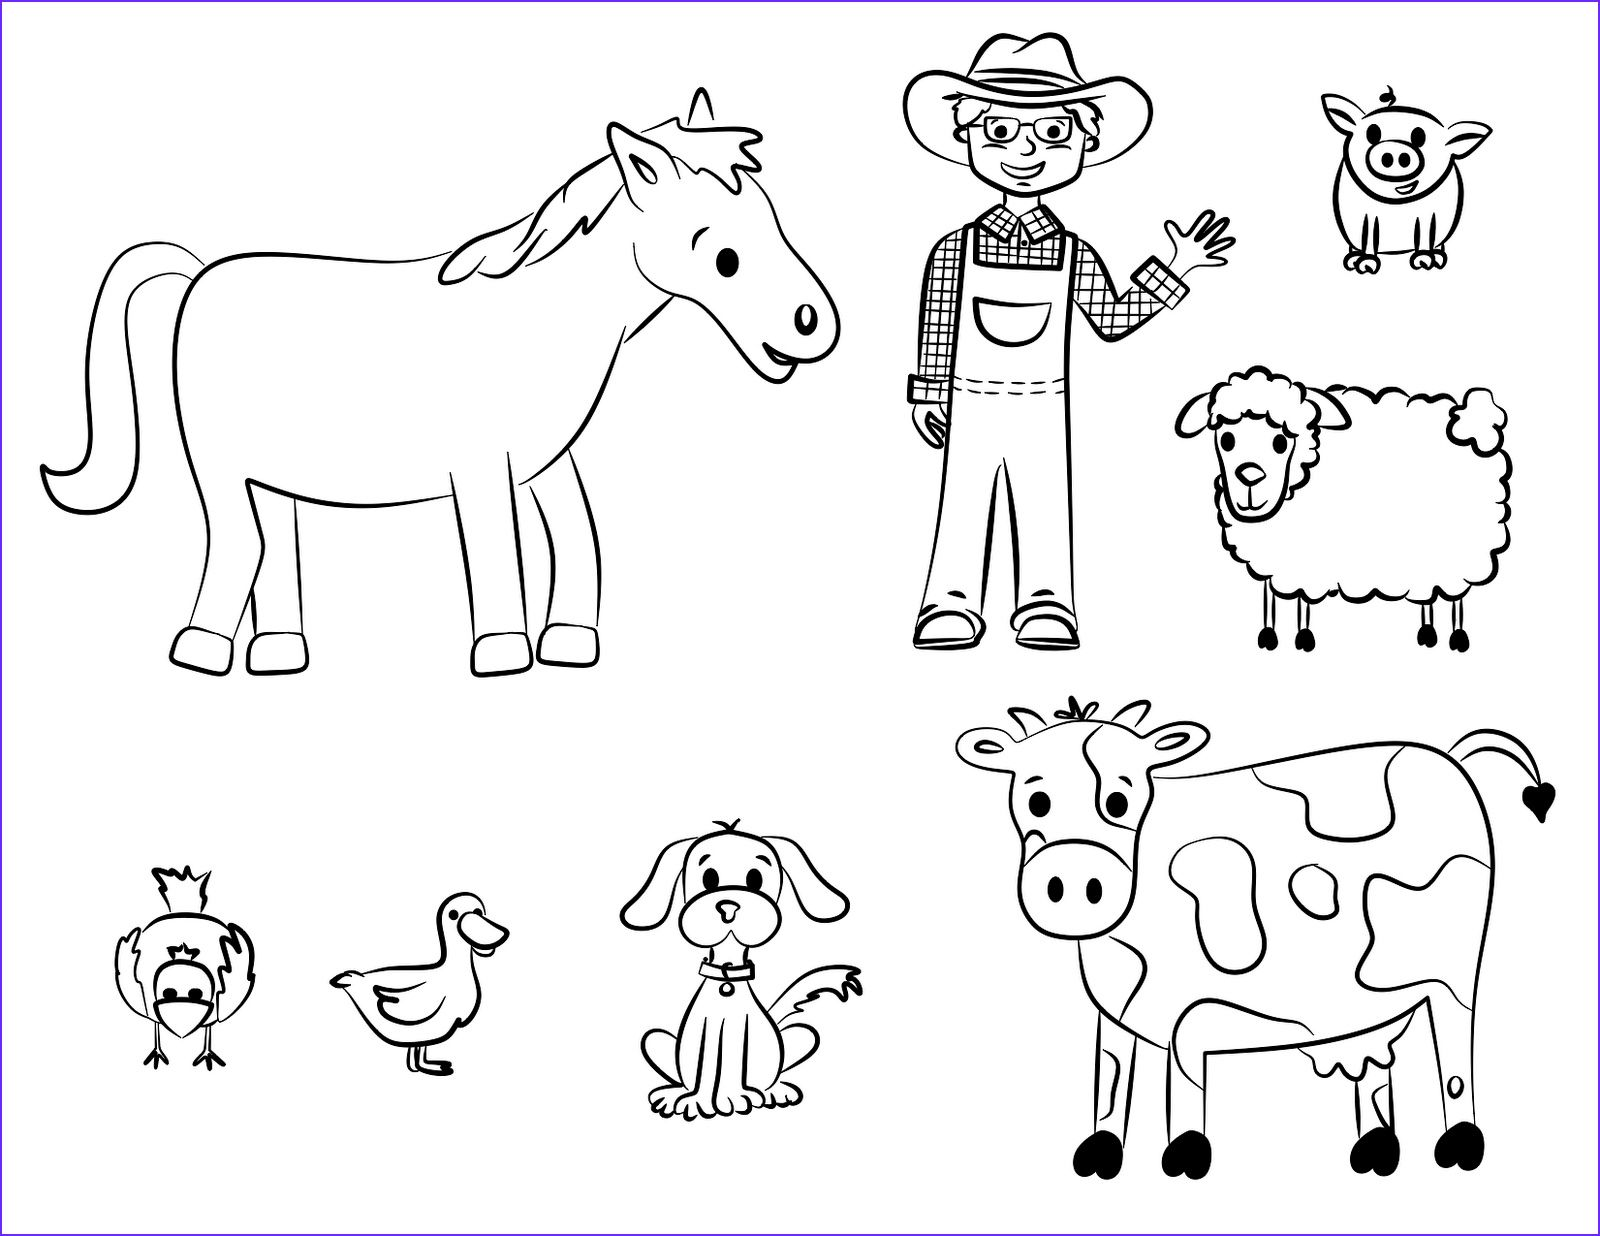 Old Mcdonald Coloring Page Zoo Animal Coloring Pages Farm Coloring Pages Farm Animal Coloring Pages [ 1236 x 1600 Pixel ]